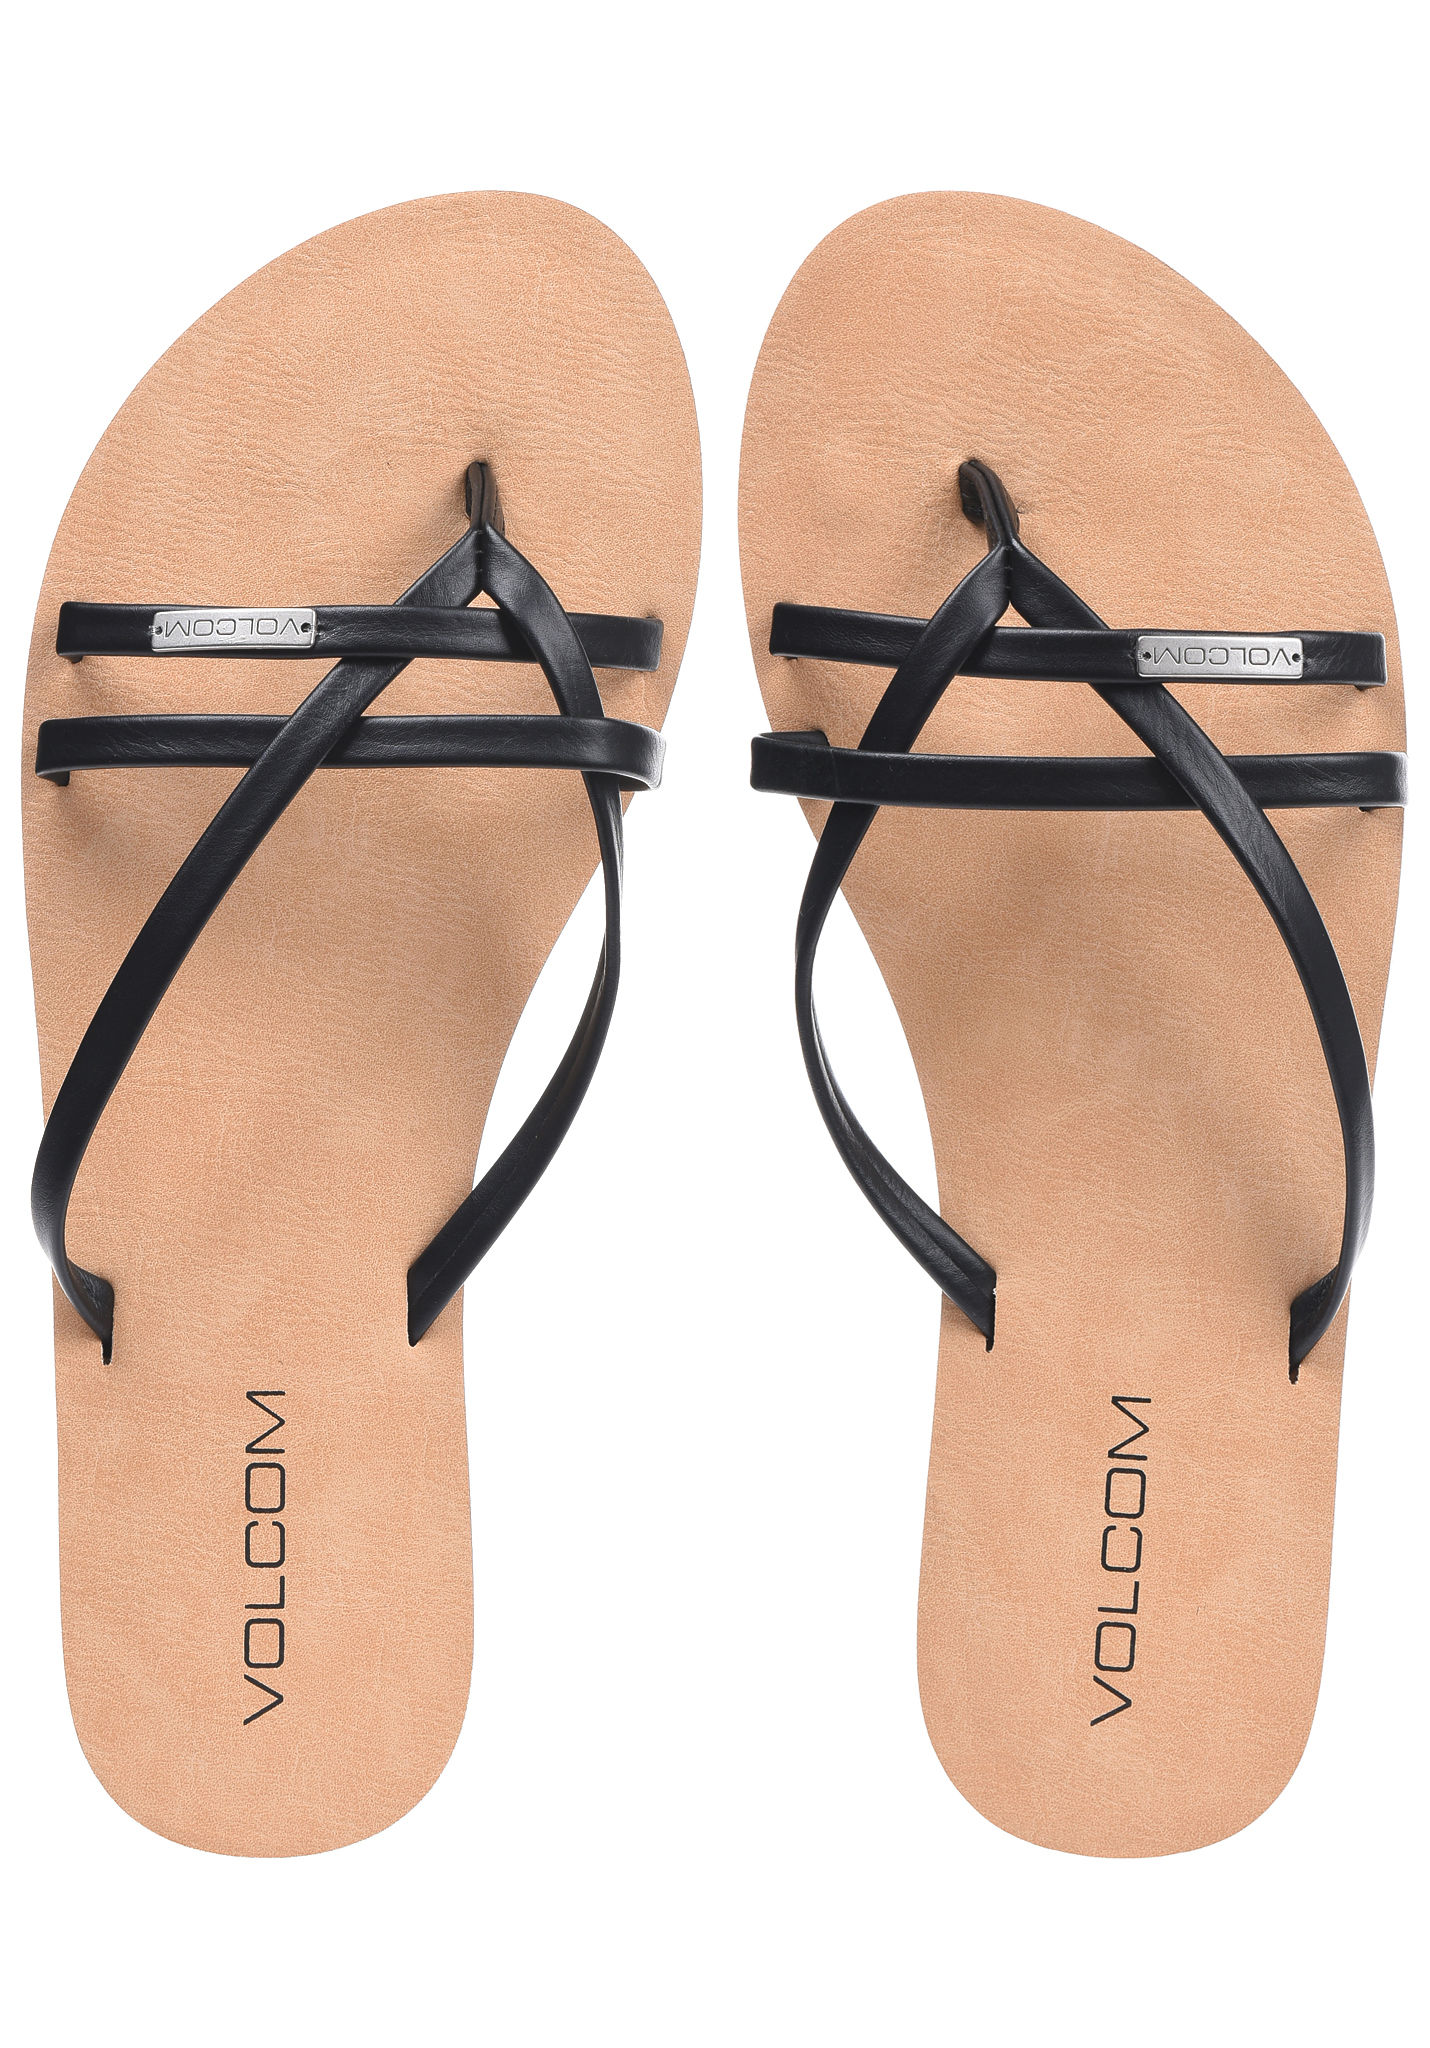 74956e0ed472a0 Volcom Lookout 2 - Sandals for Women - Black - Planet Sports